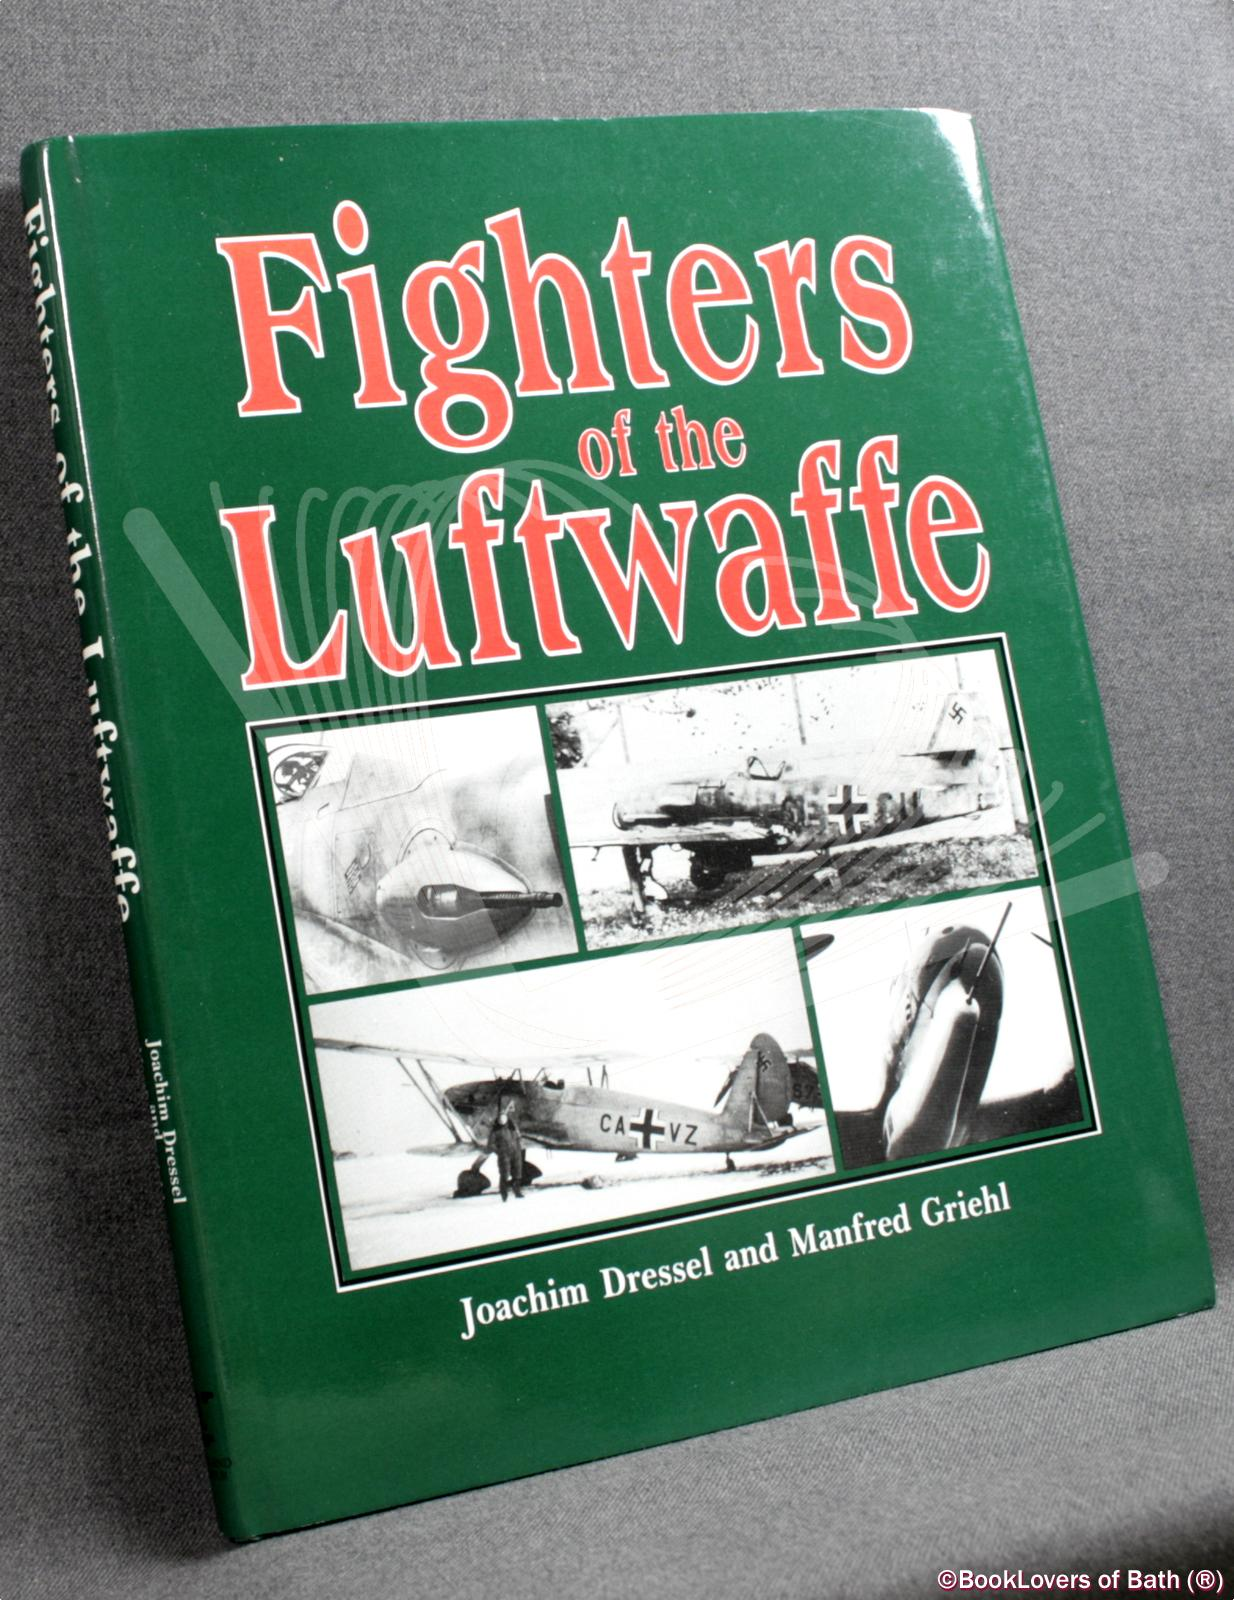 Fighters of the Luftwaffe - Joachim Dressel & Manfred Greihl